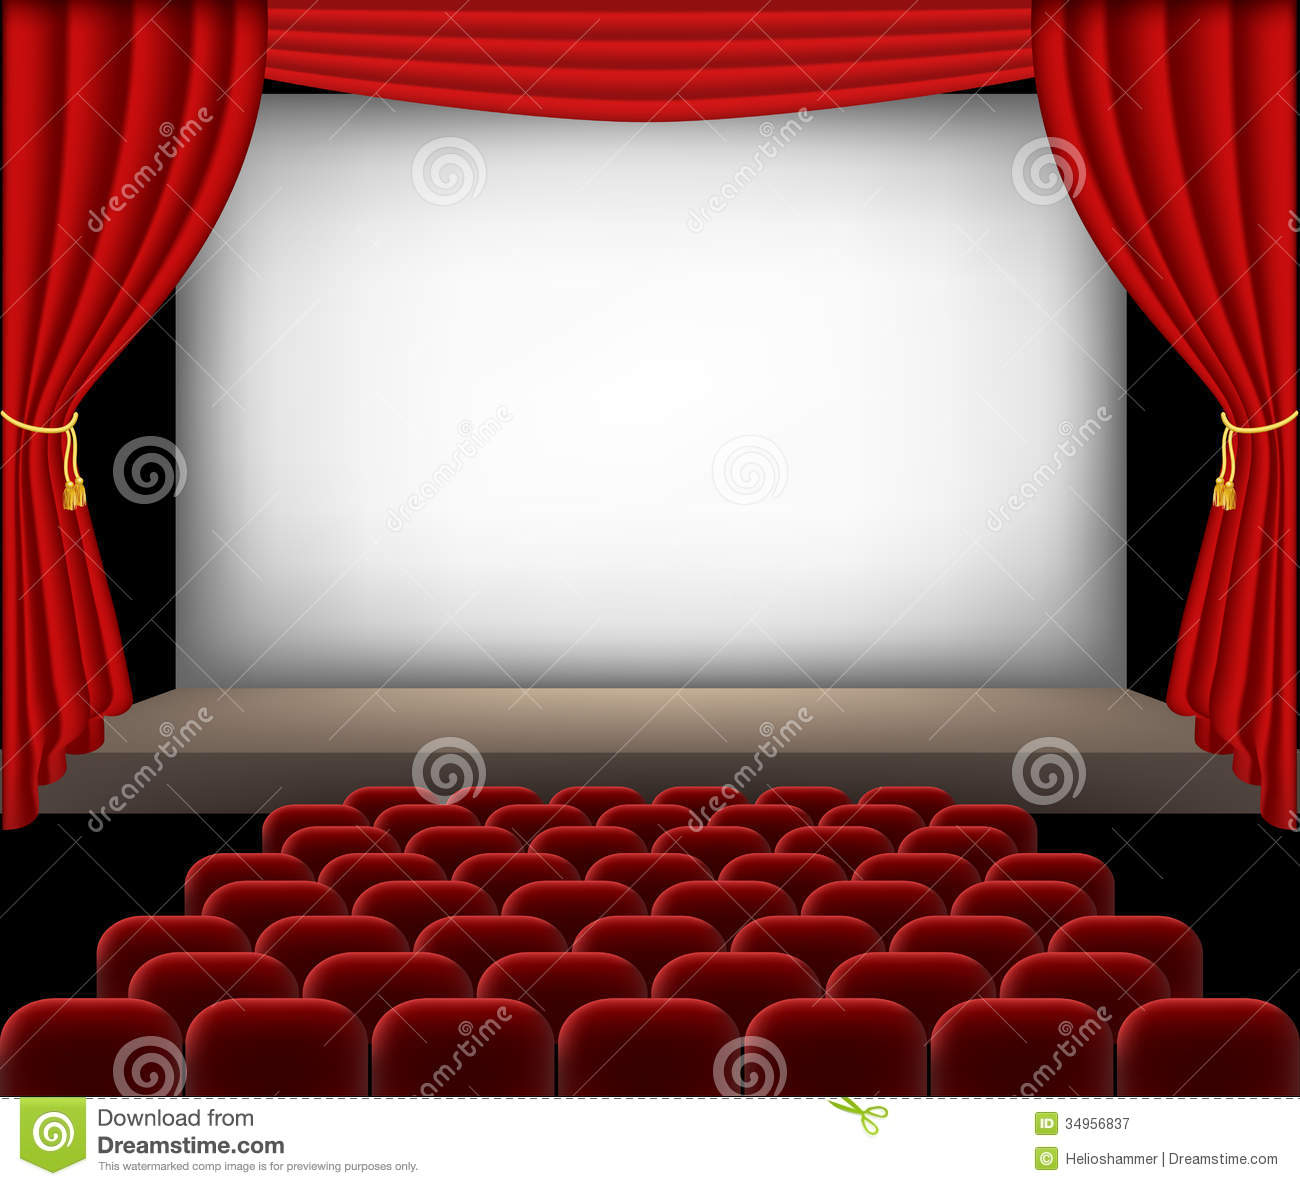 Cinema Auditorium With Red Seats And Curtains Stock Vector ...